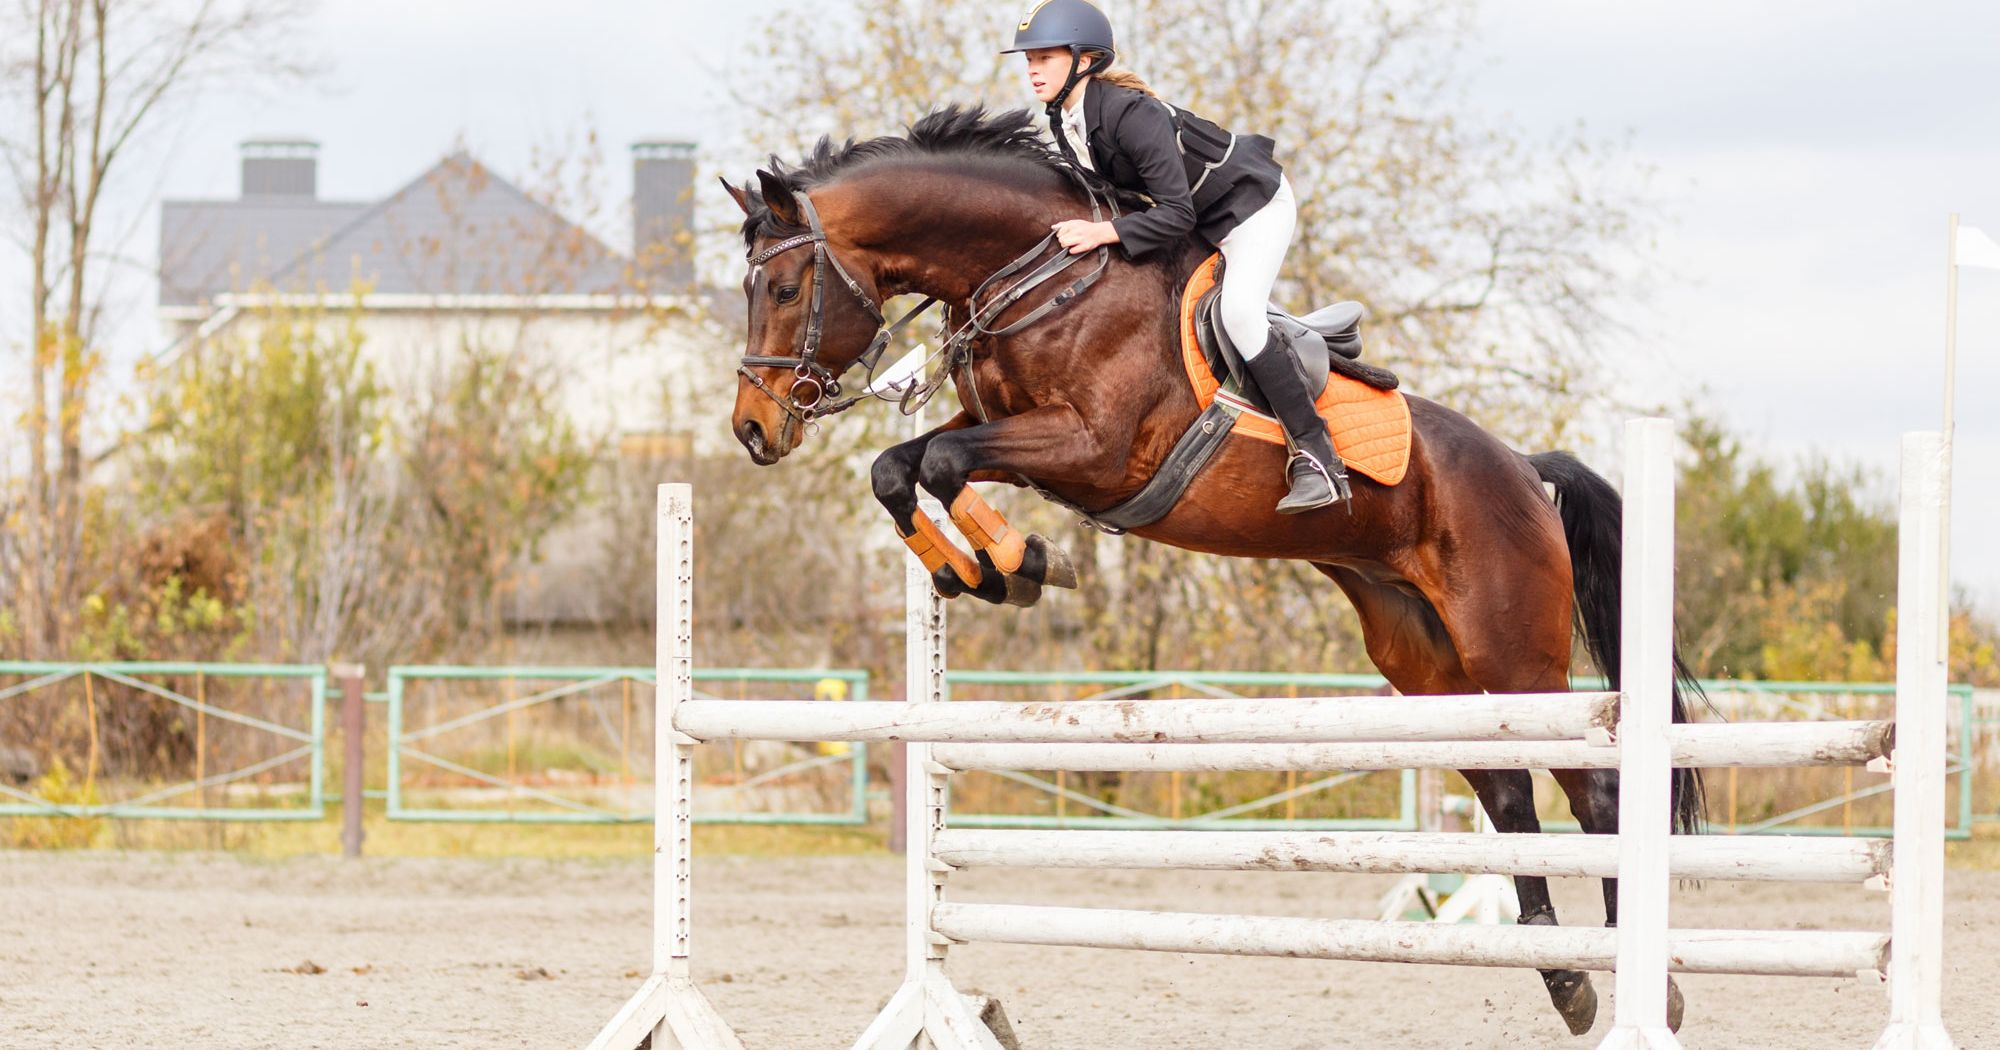 5 Tips On Moving Up A Jumping Level